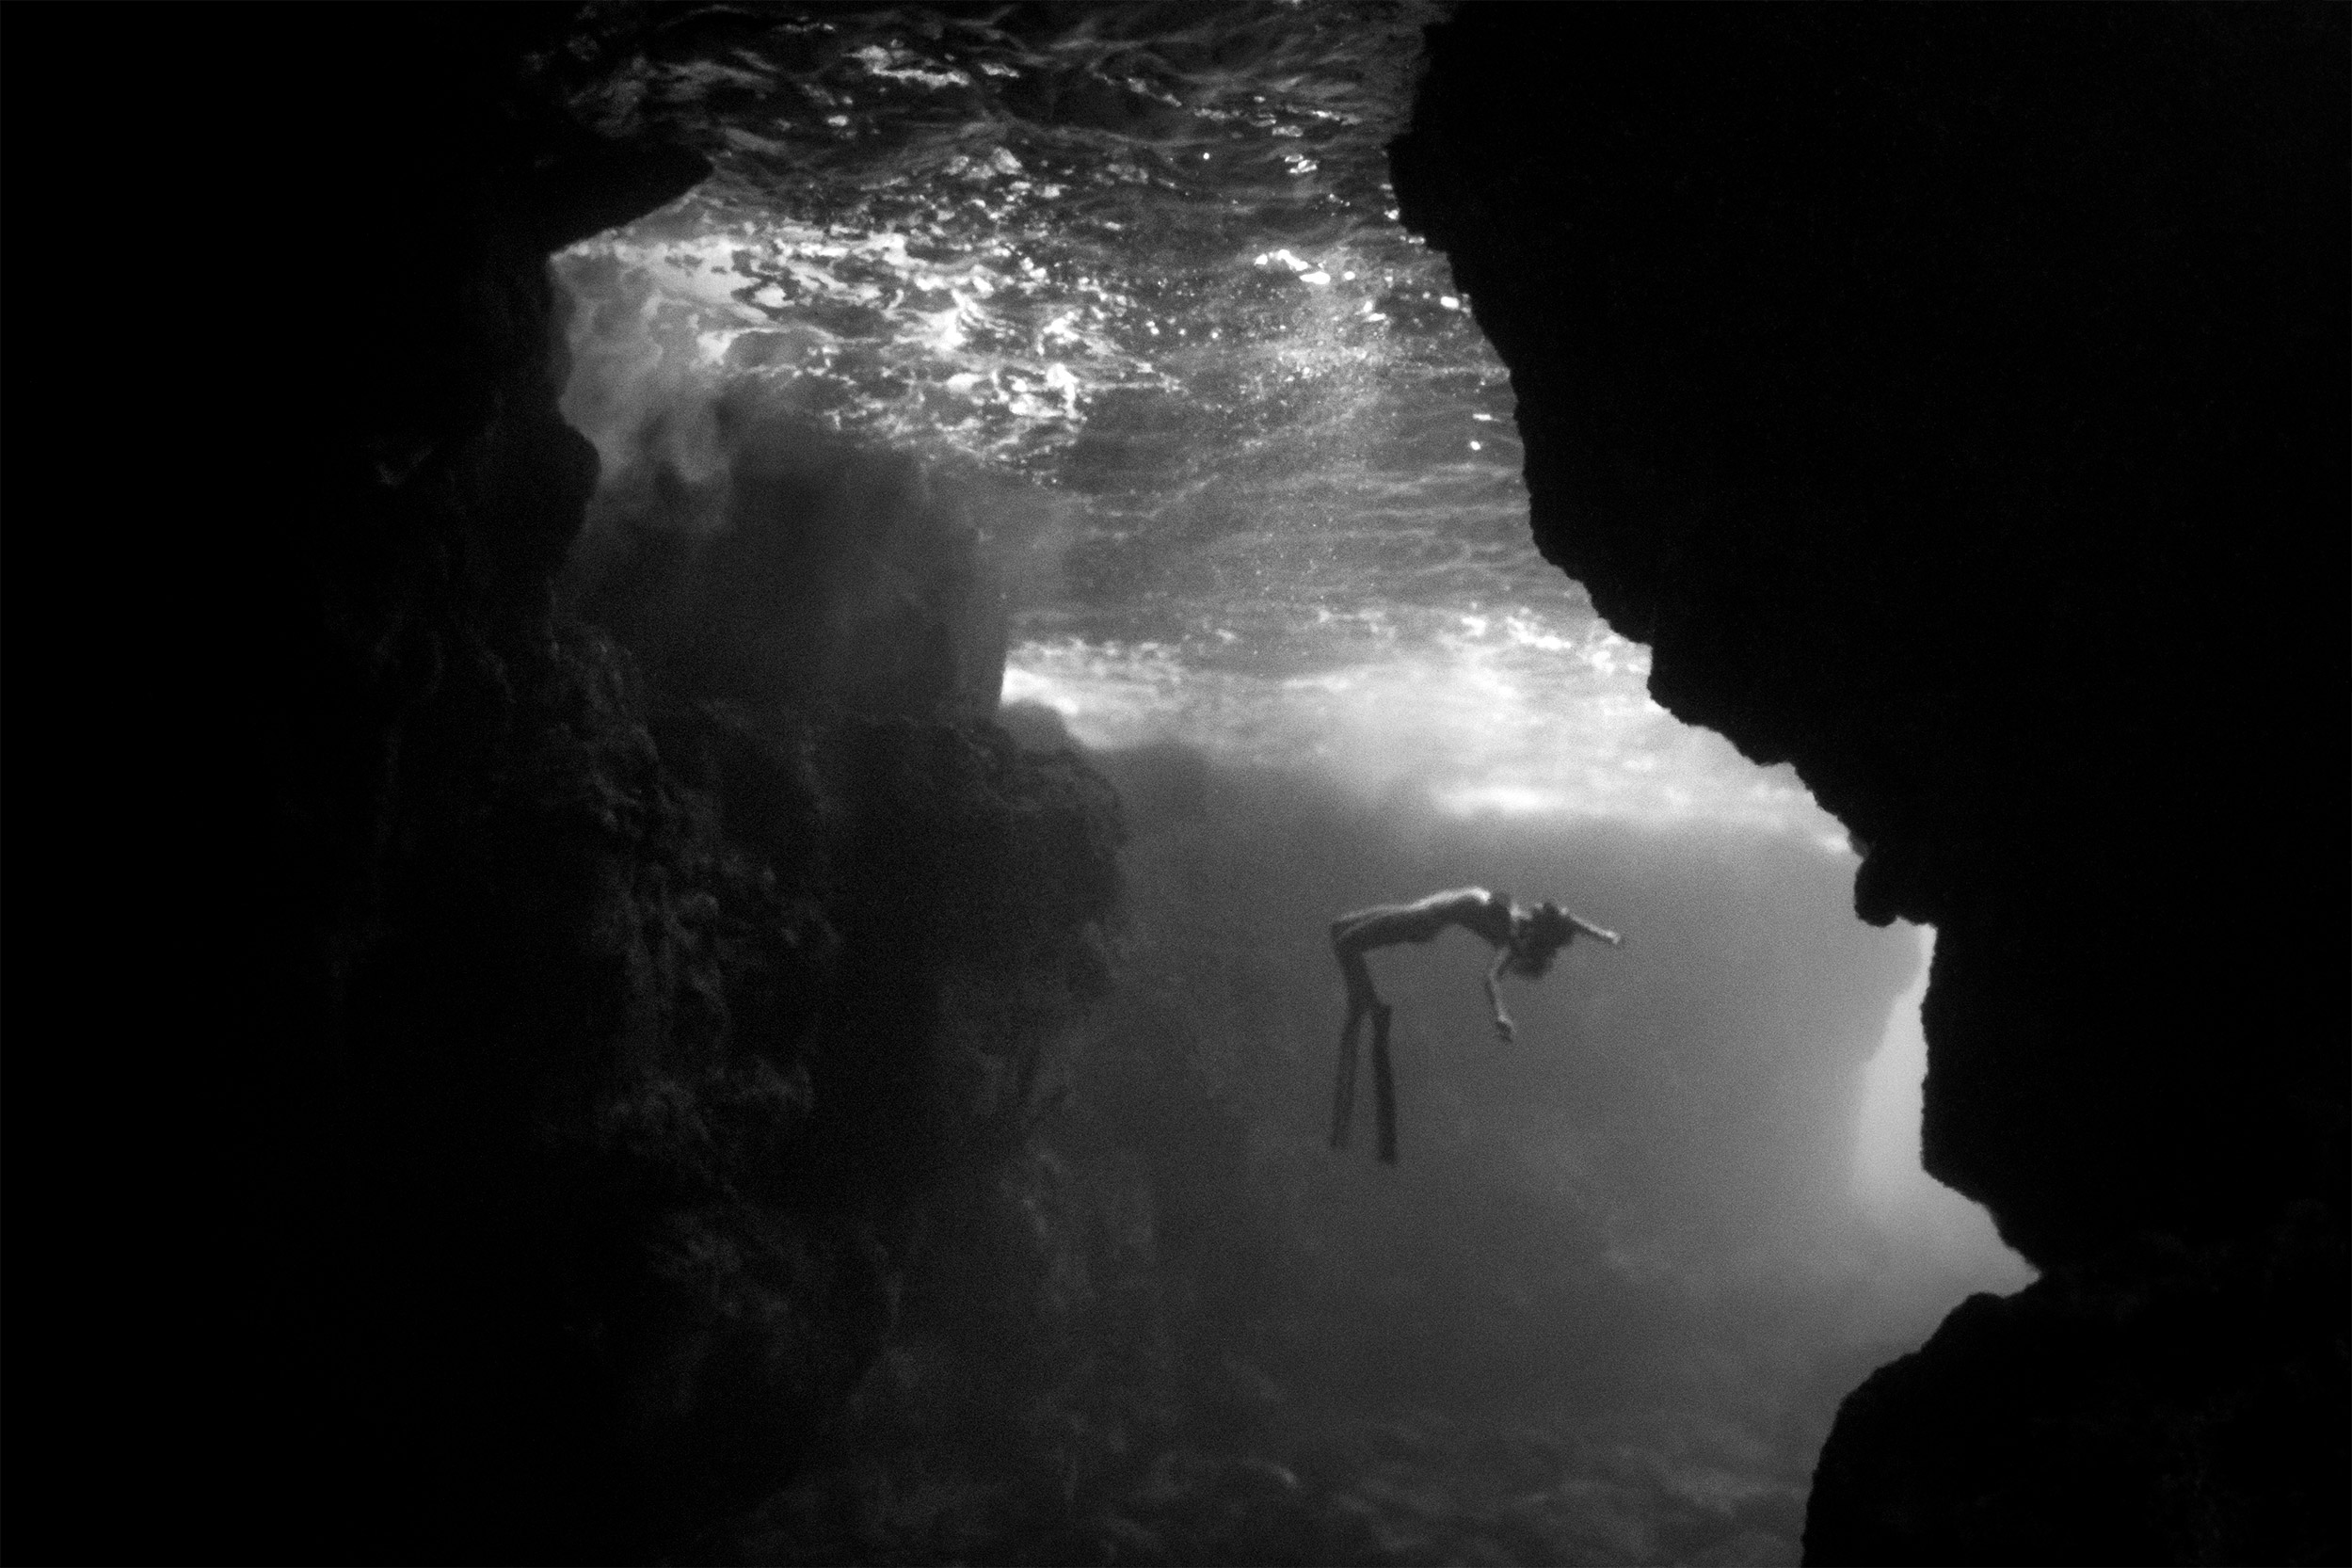 Kona - girl freediving in a cave